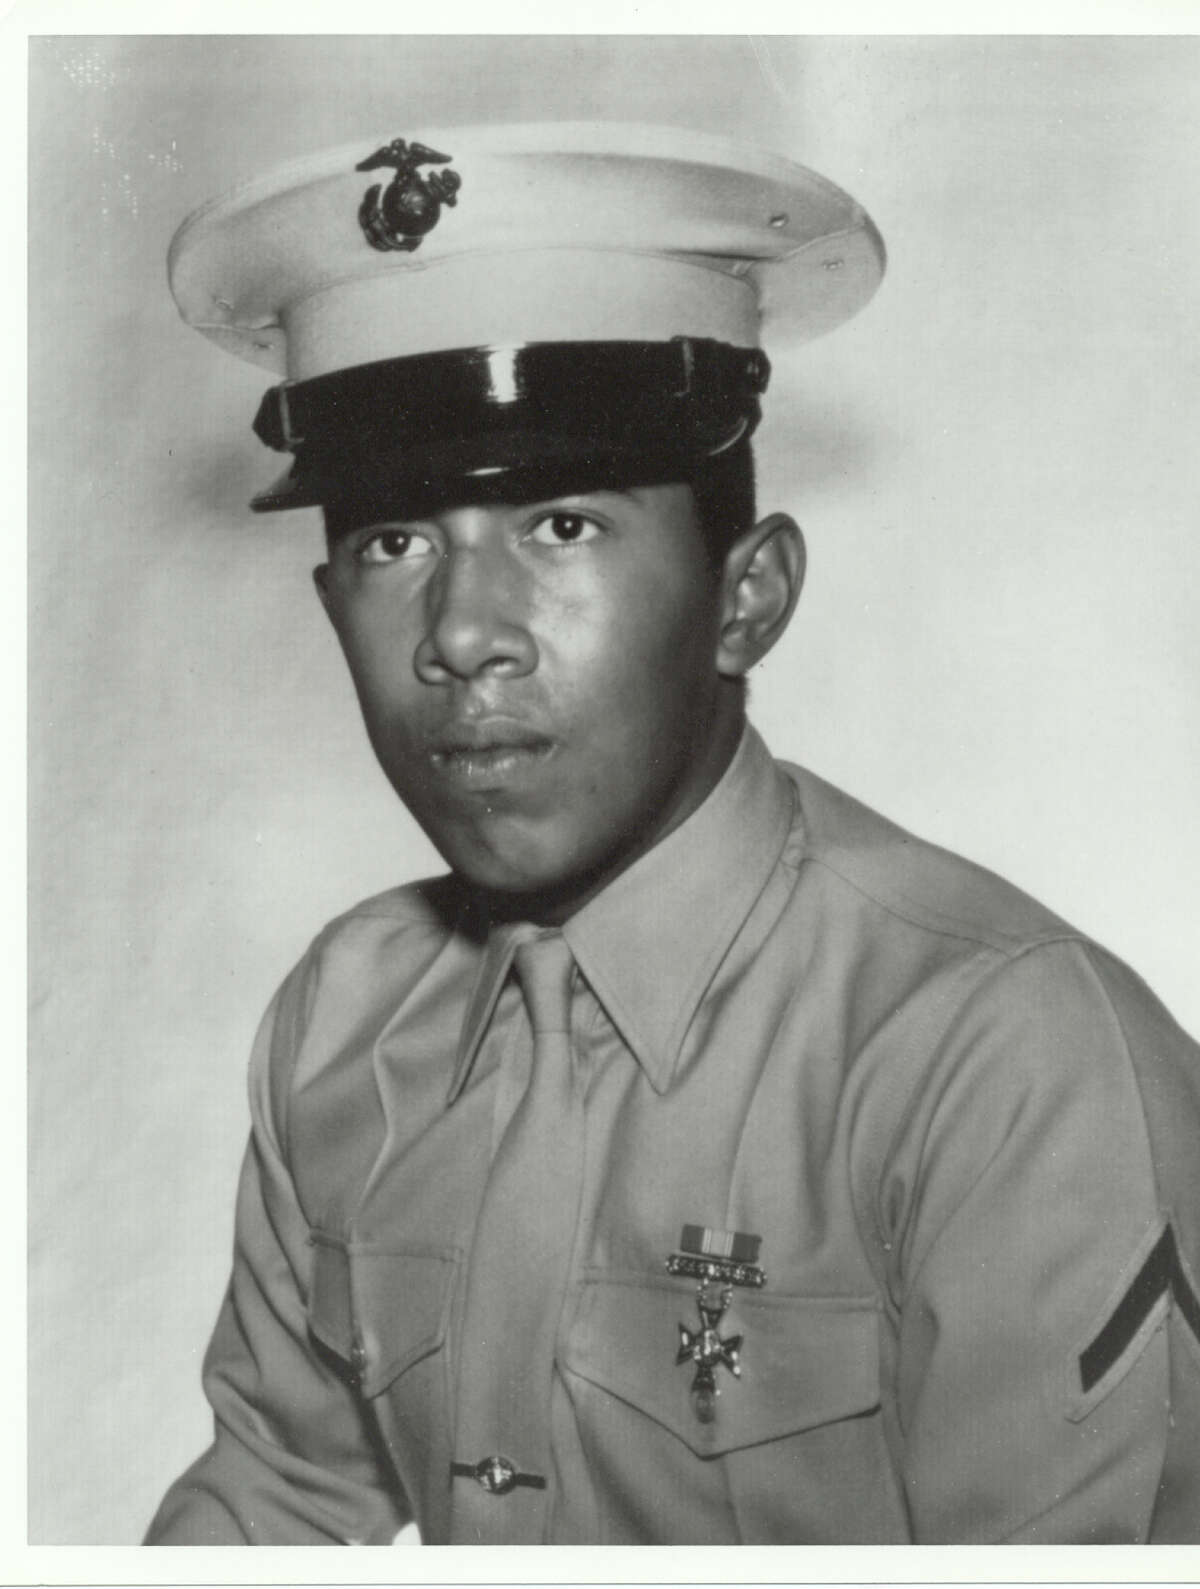 Lance Corporal Miguel Keith, 1951-1970Vietnam War: Lance Corporal, U.S. Marine Corps, Combined Action platoon 1-3-2, 111 Marine Amphibious ForceFor actions in Quang Ngai province, Vietnam, May 8, 1970